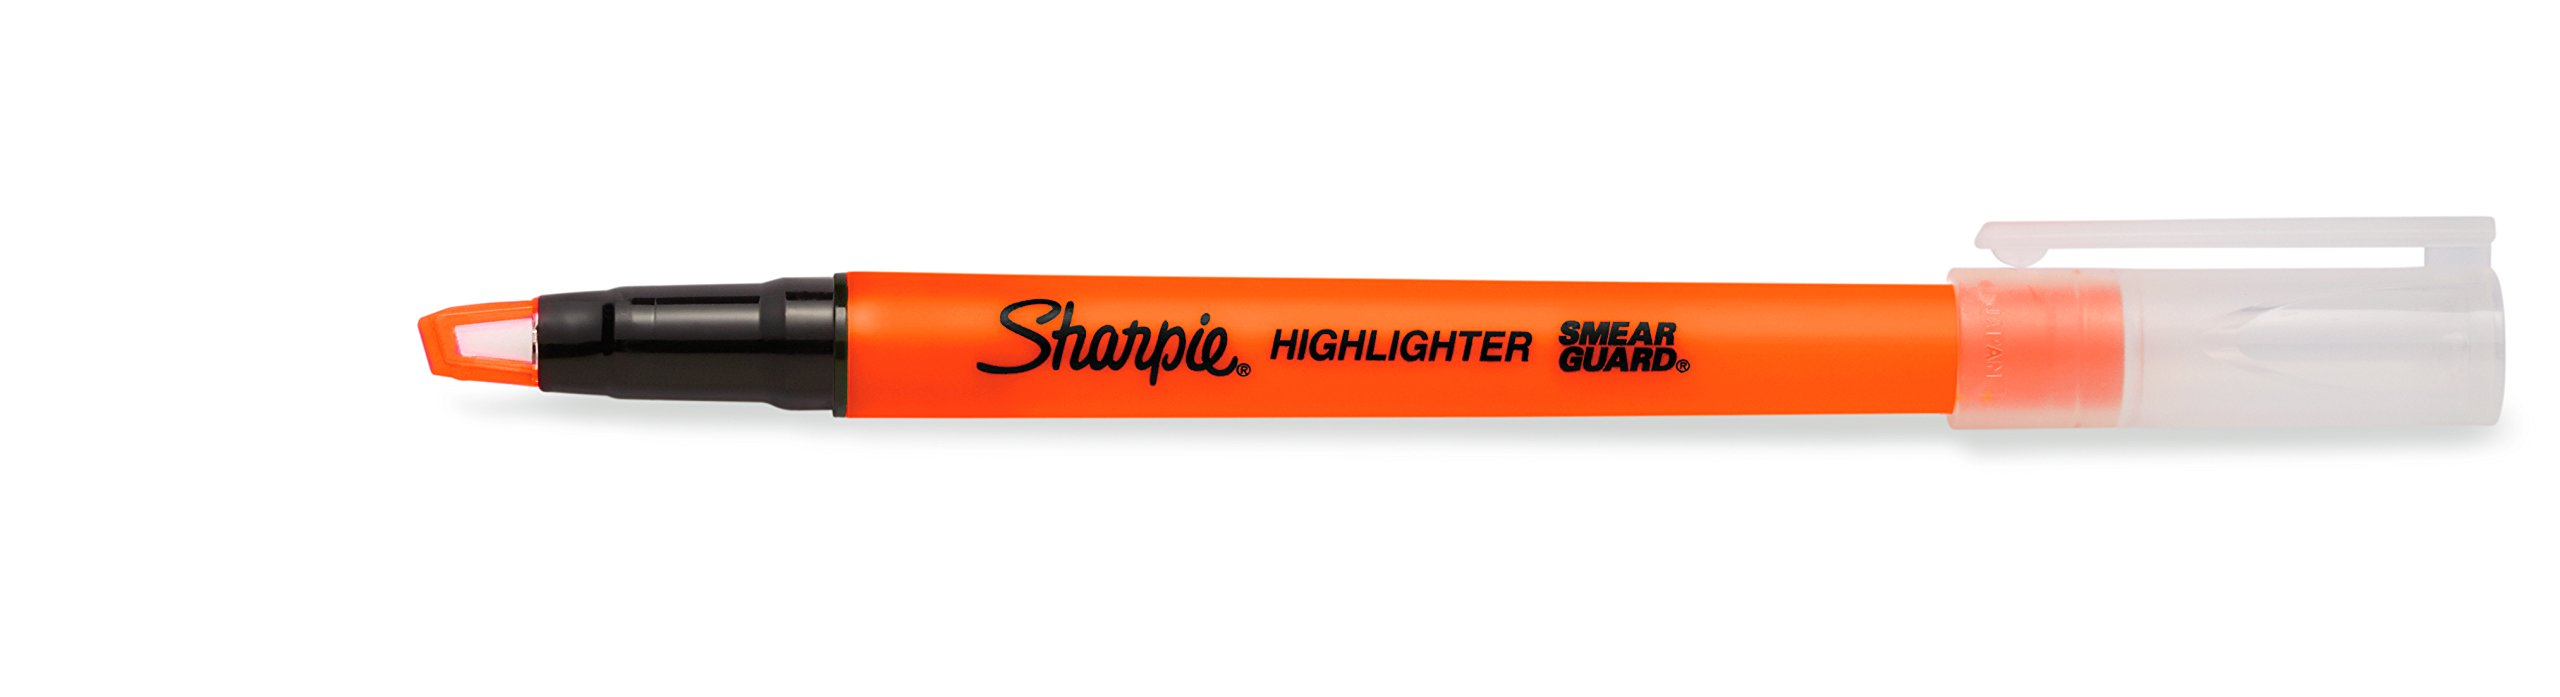 Sharpie Clear View Highlighter Stick, Assorted, 8 Pack (1966798) by Sharpie (Image #10)